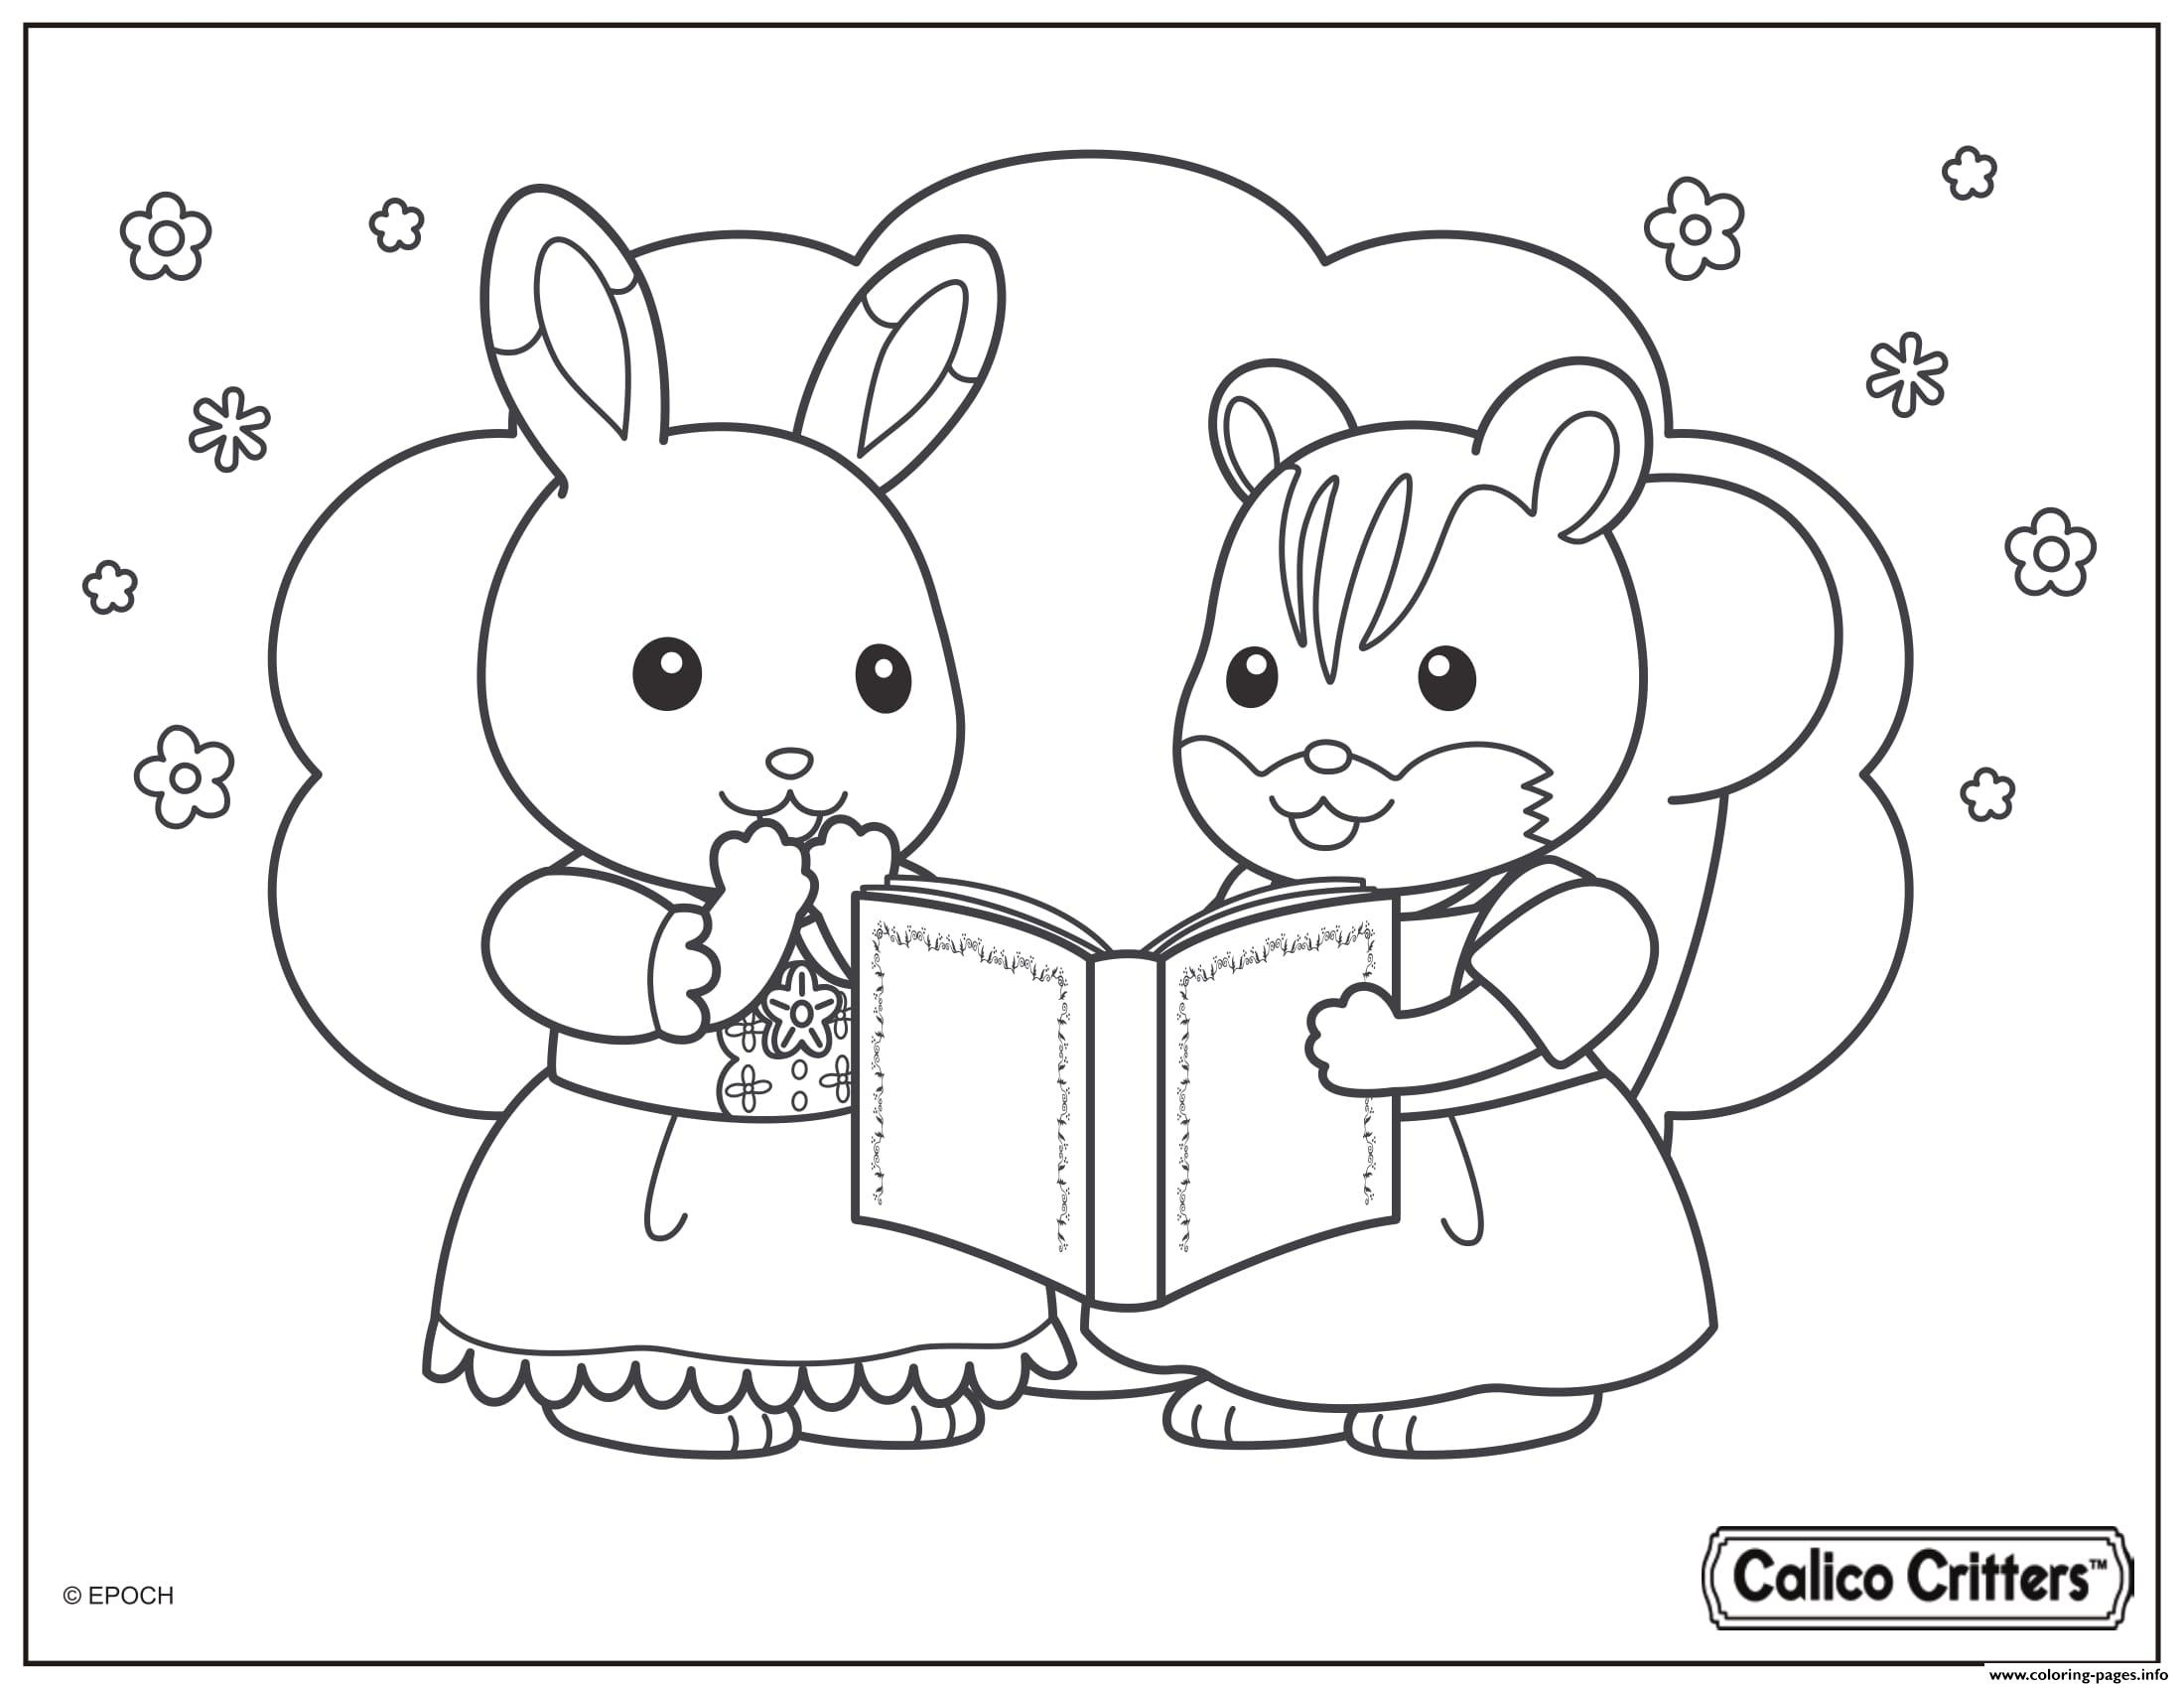 Calico Critters Read Great Story Book Coloring Pages